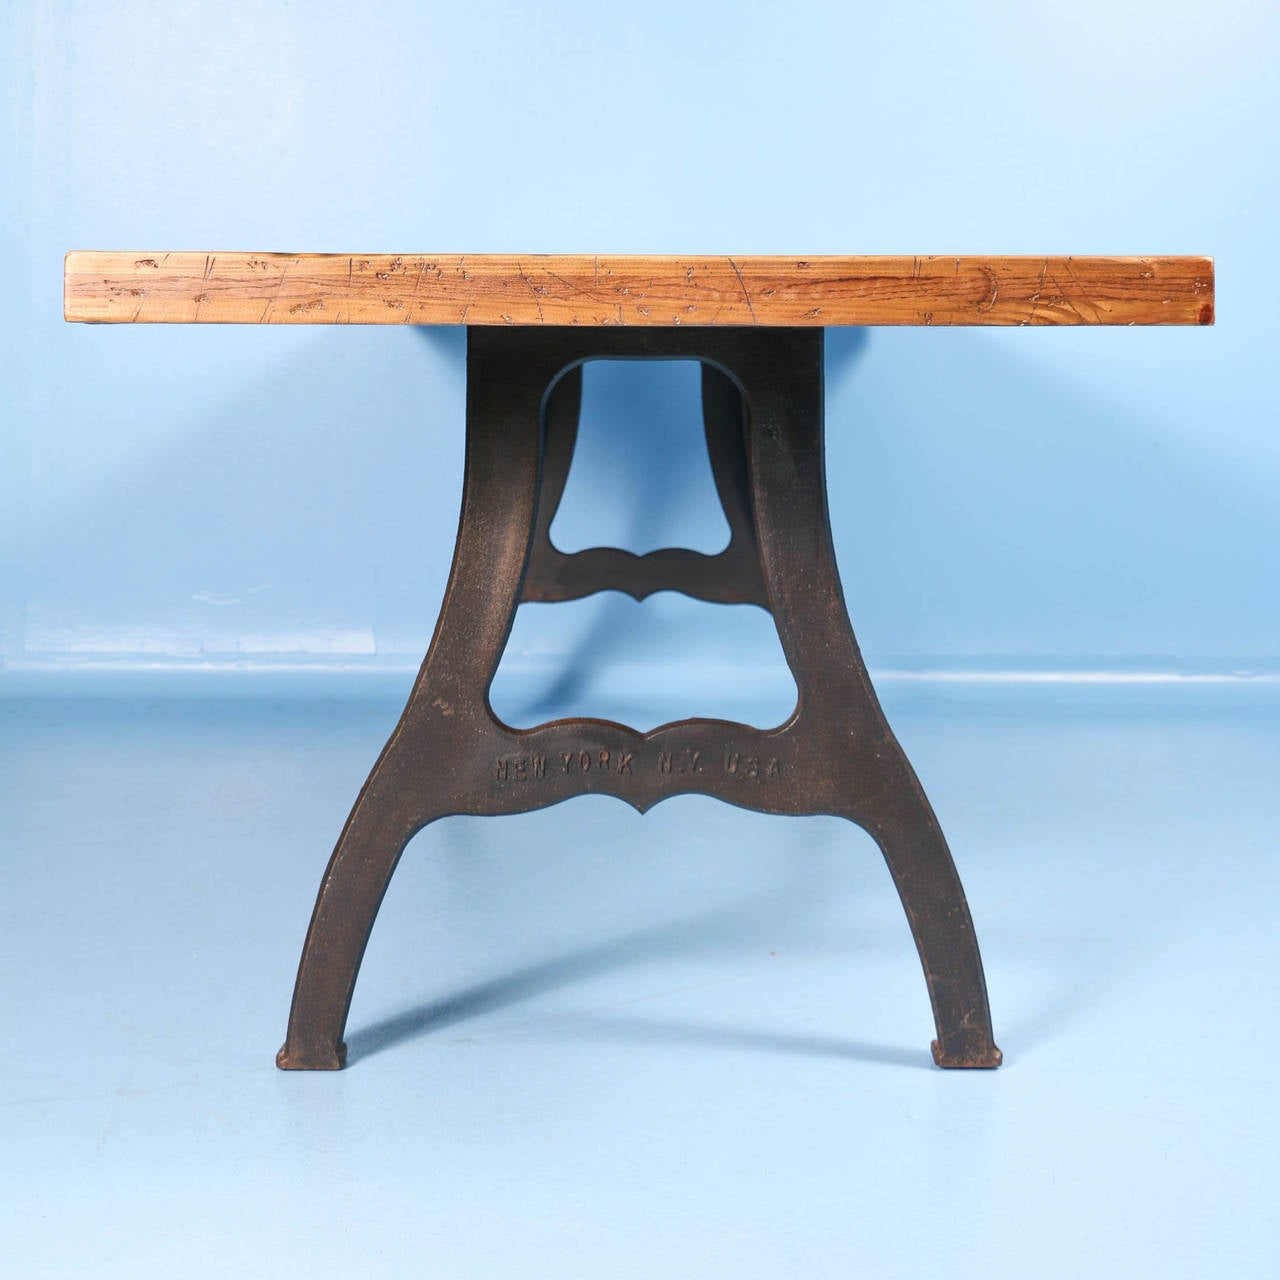 Vintage Industrial Look Dining Table from Reclaimed Wood ...